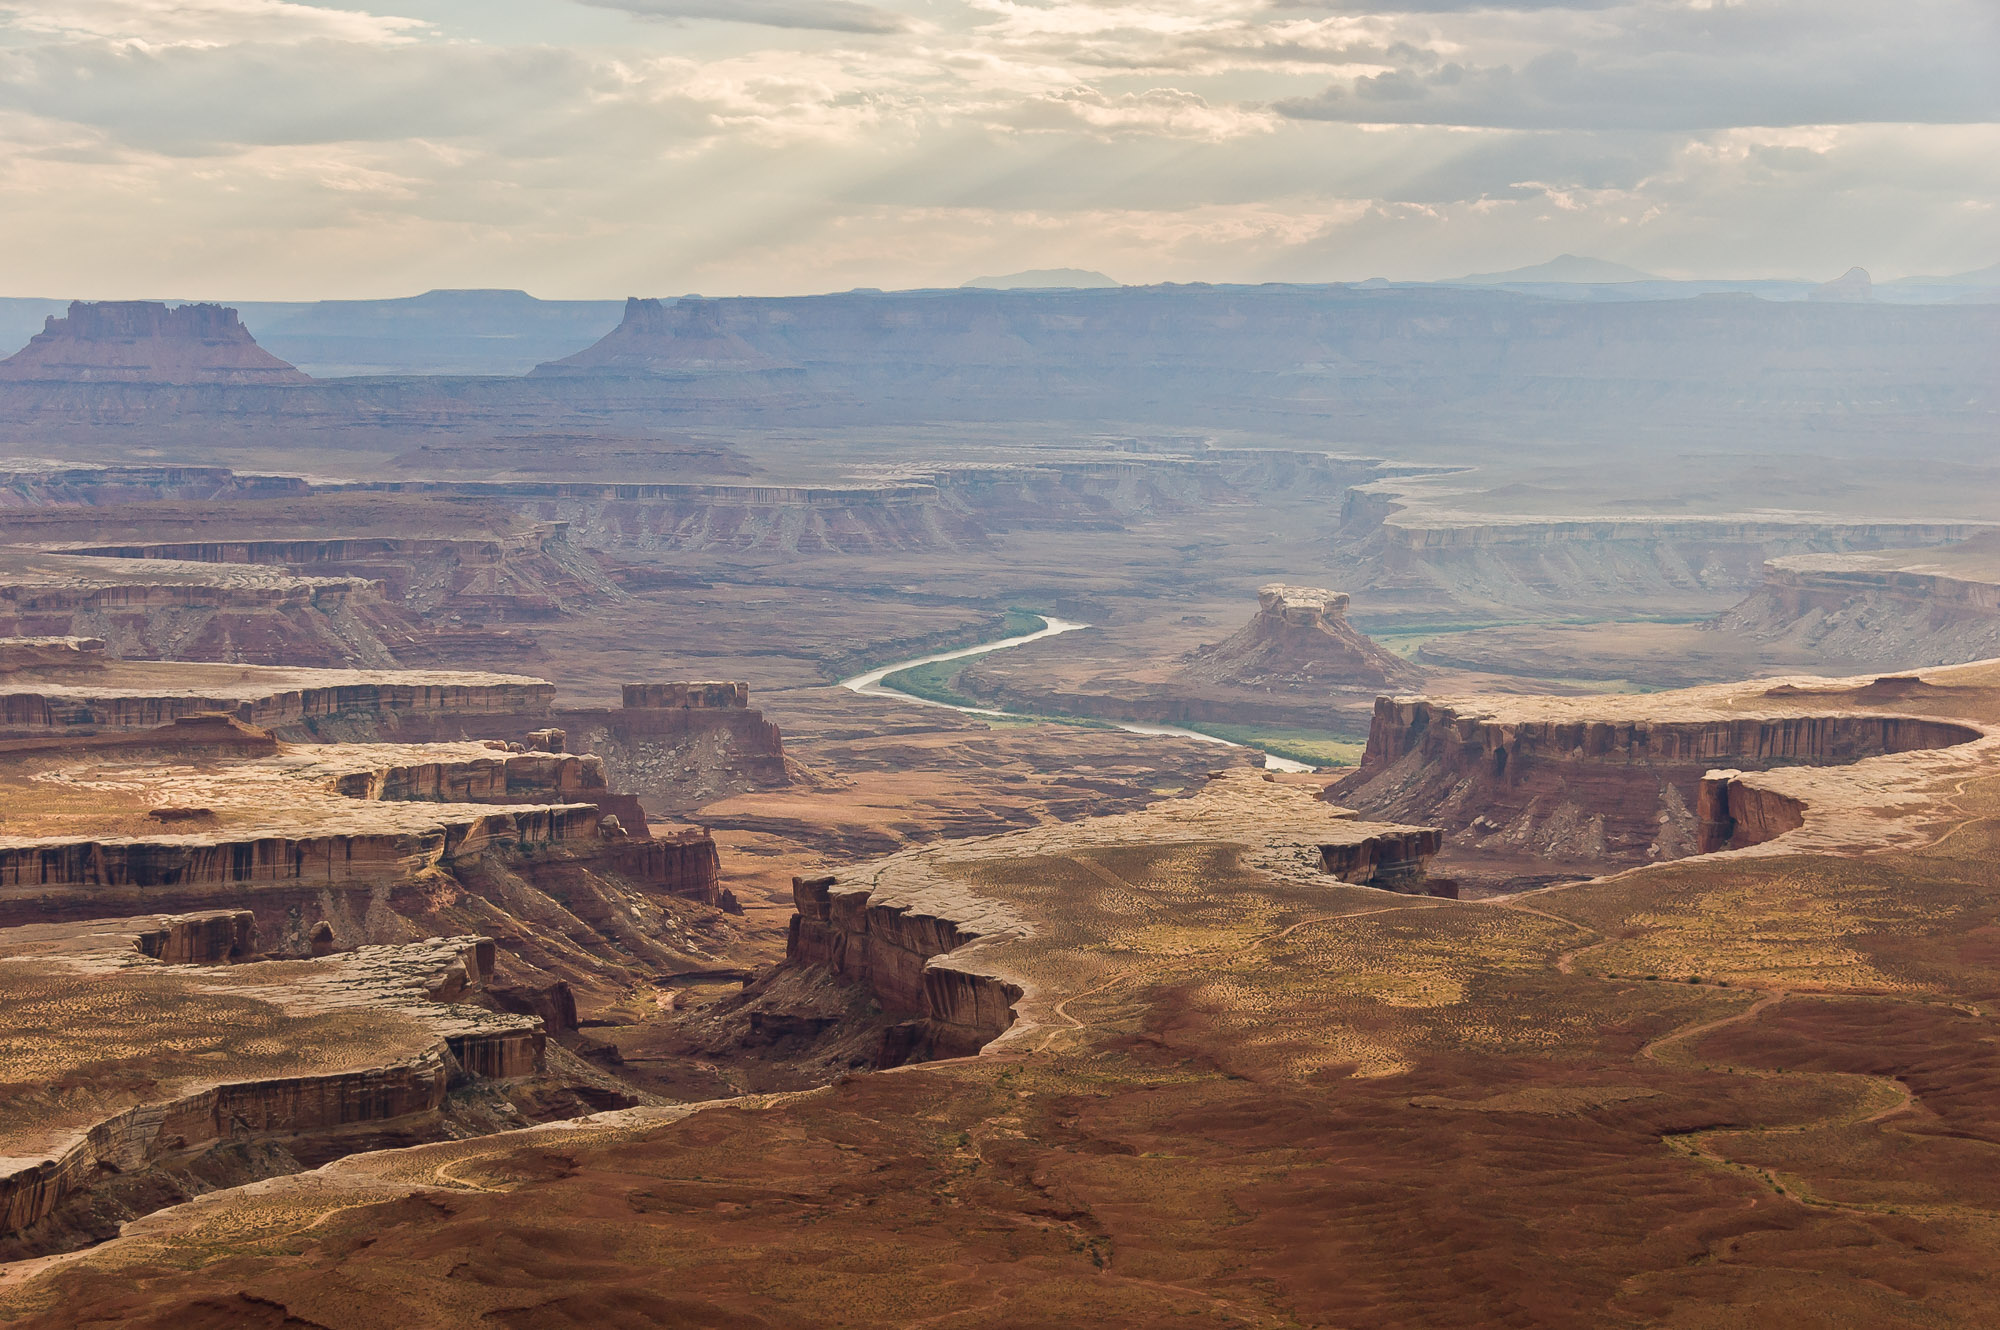 View over Stillwater Canyon and the Green River - Canyonlands National Park, Utah